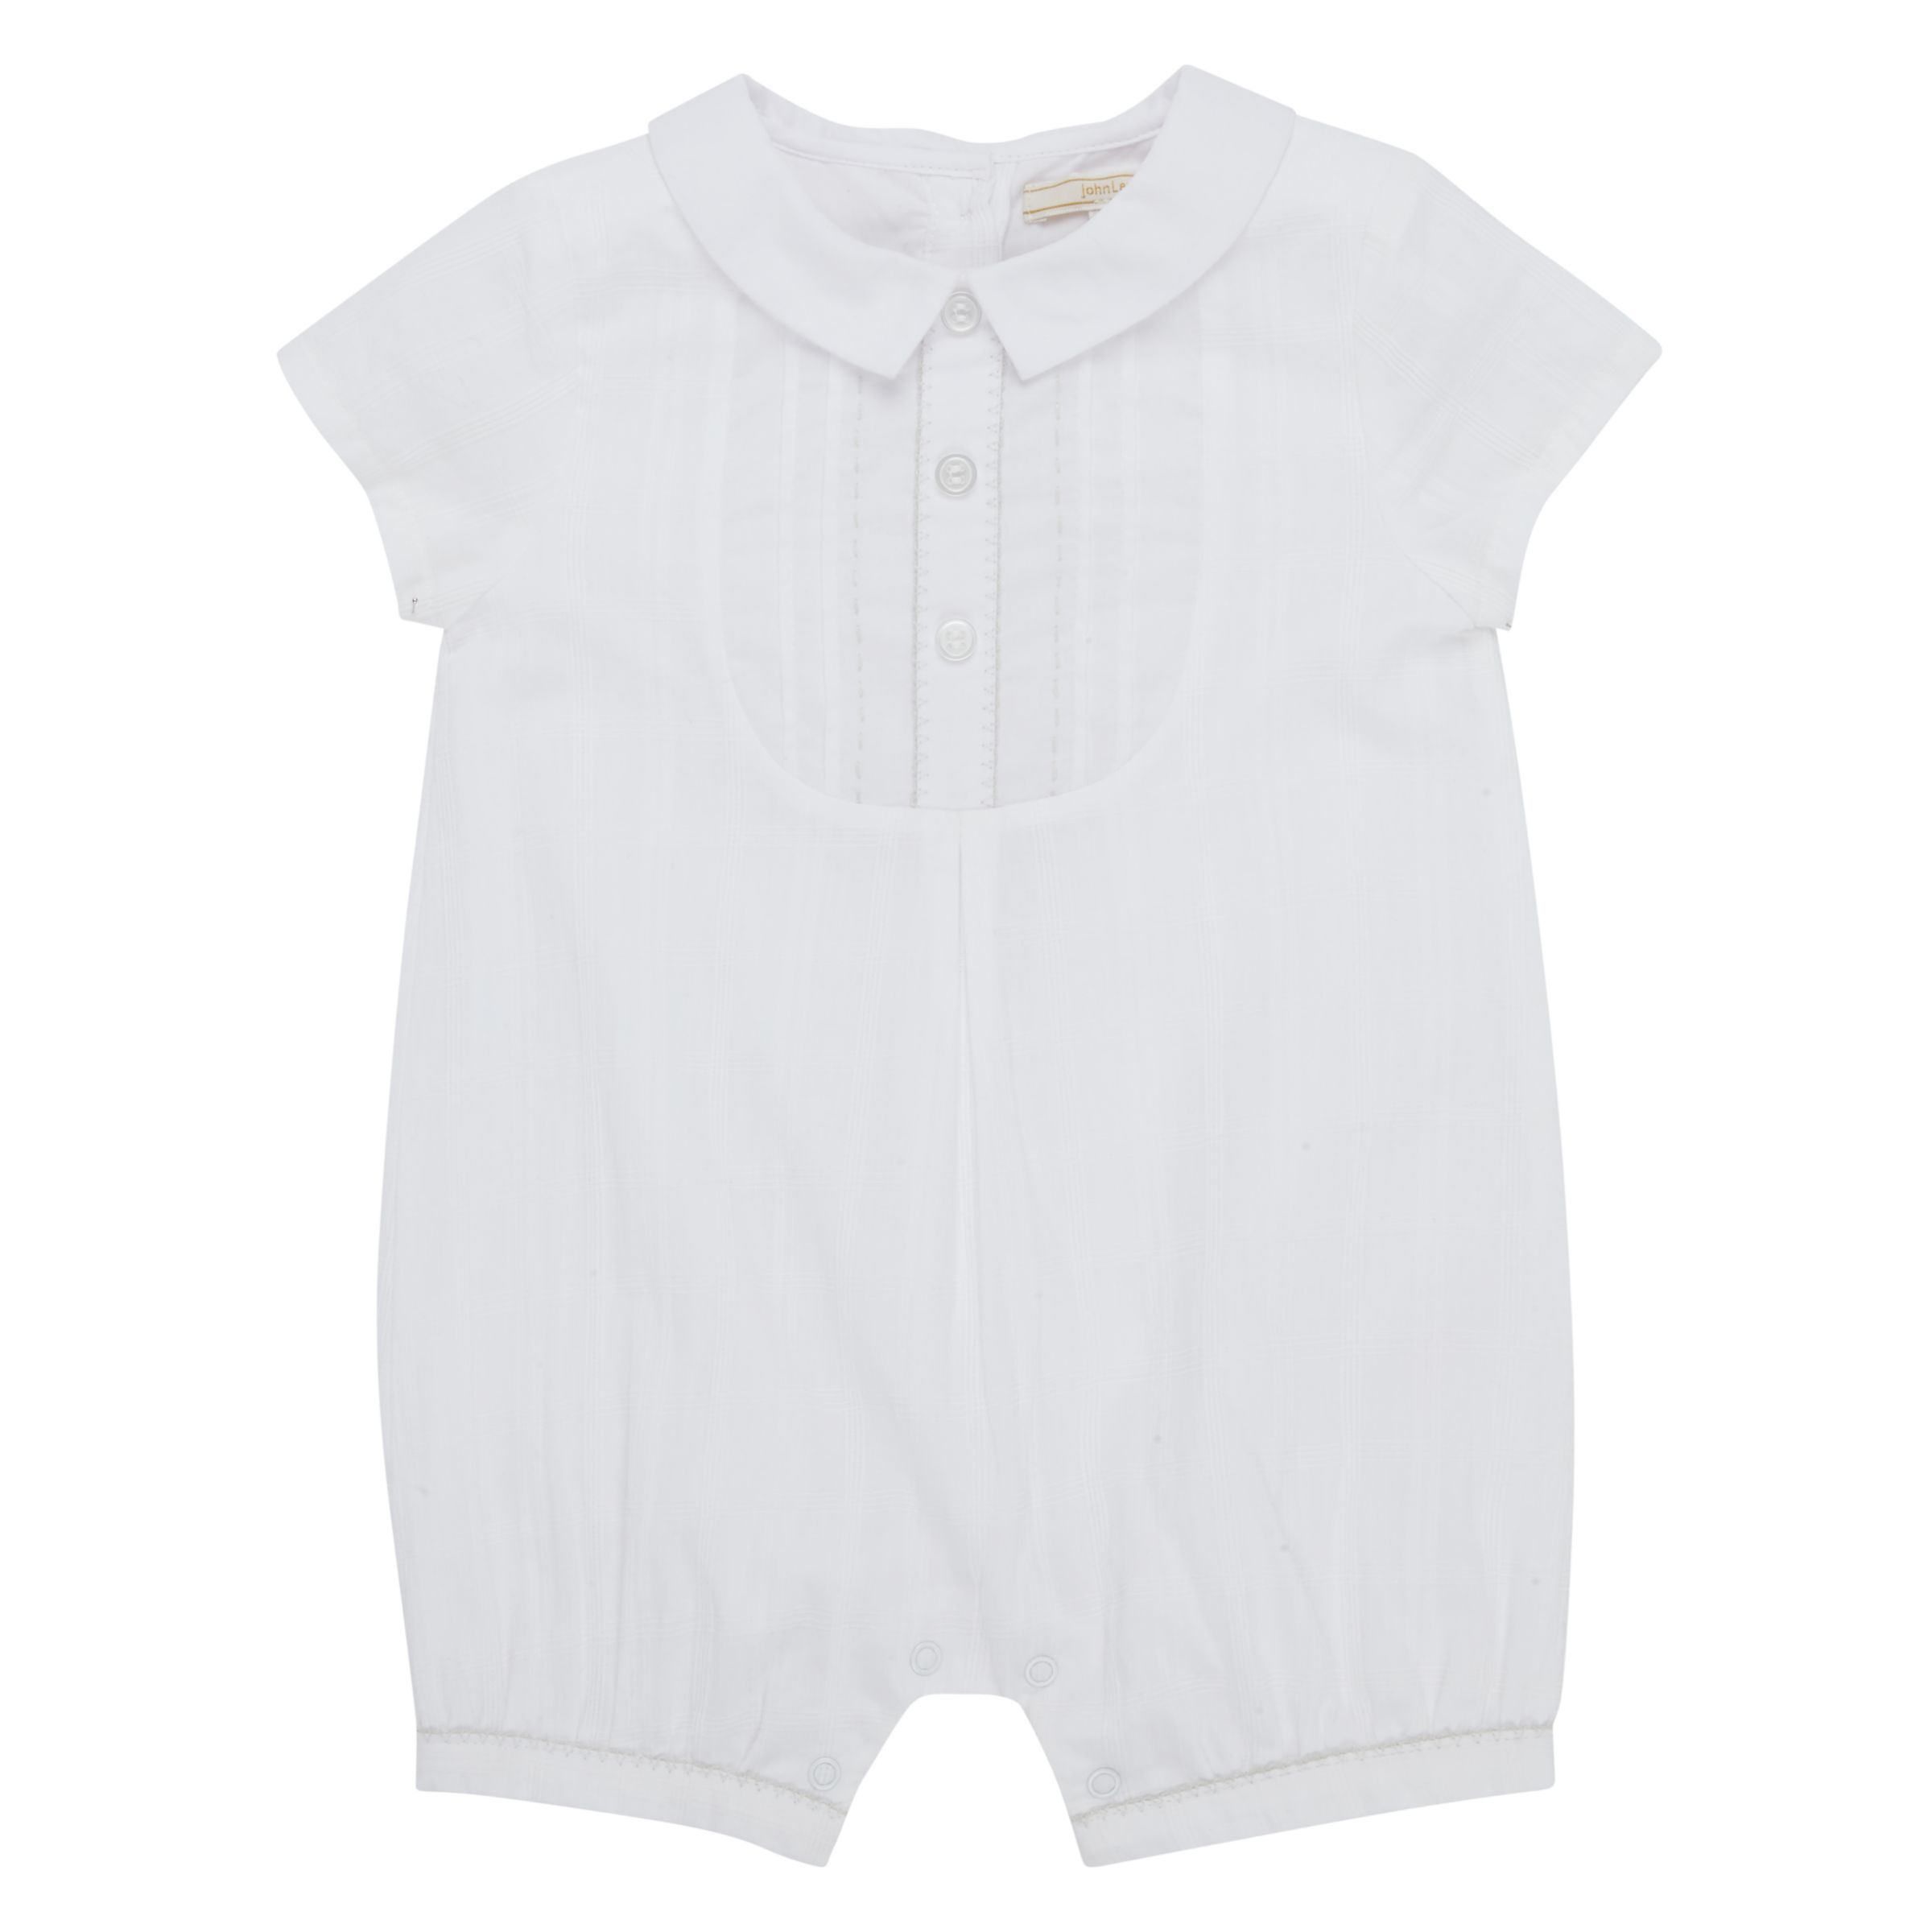 John Lewis Heirloom Collection John Lewis Heirloom Collection Baby Woven Romper, White